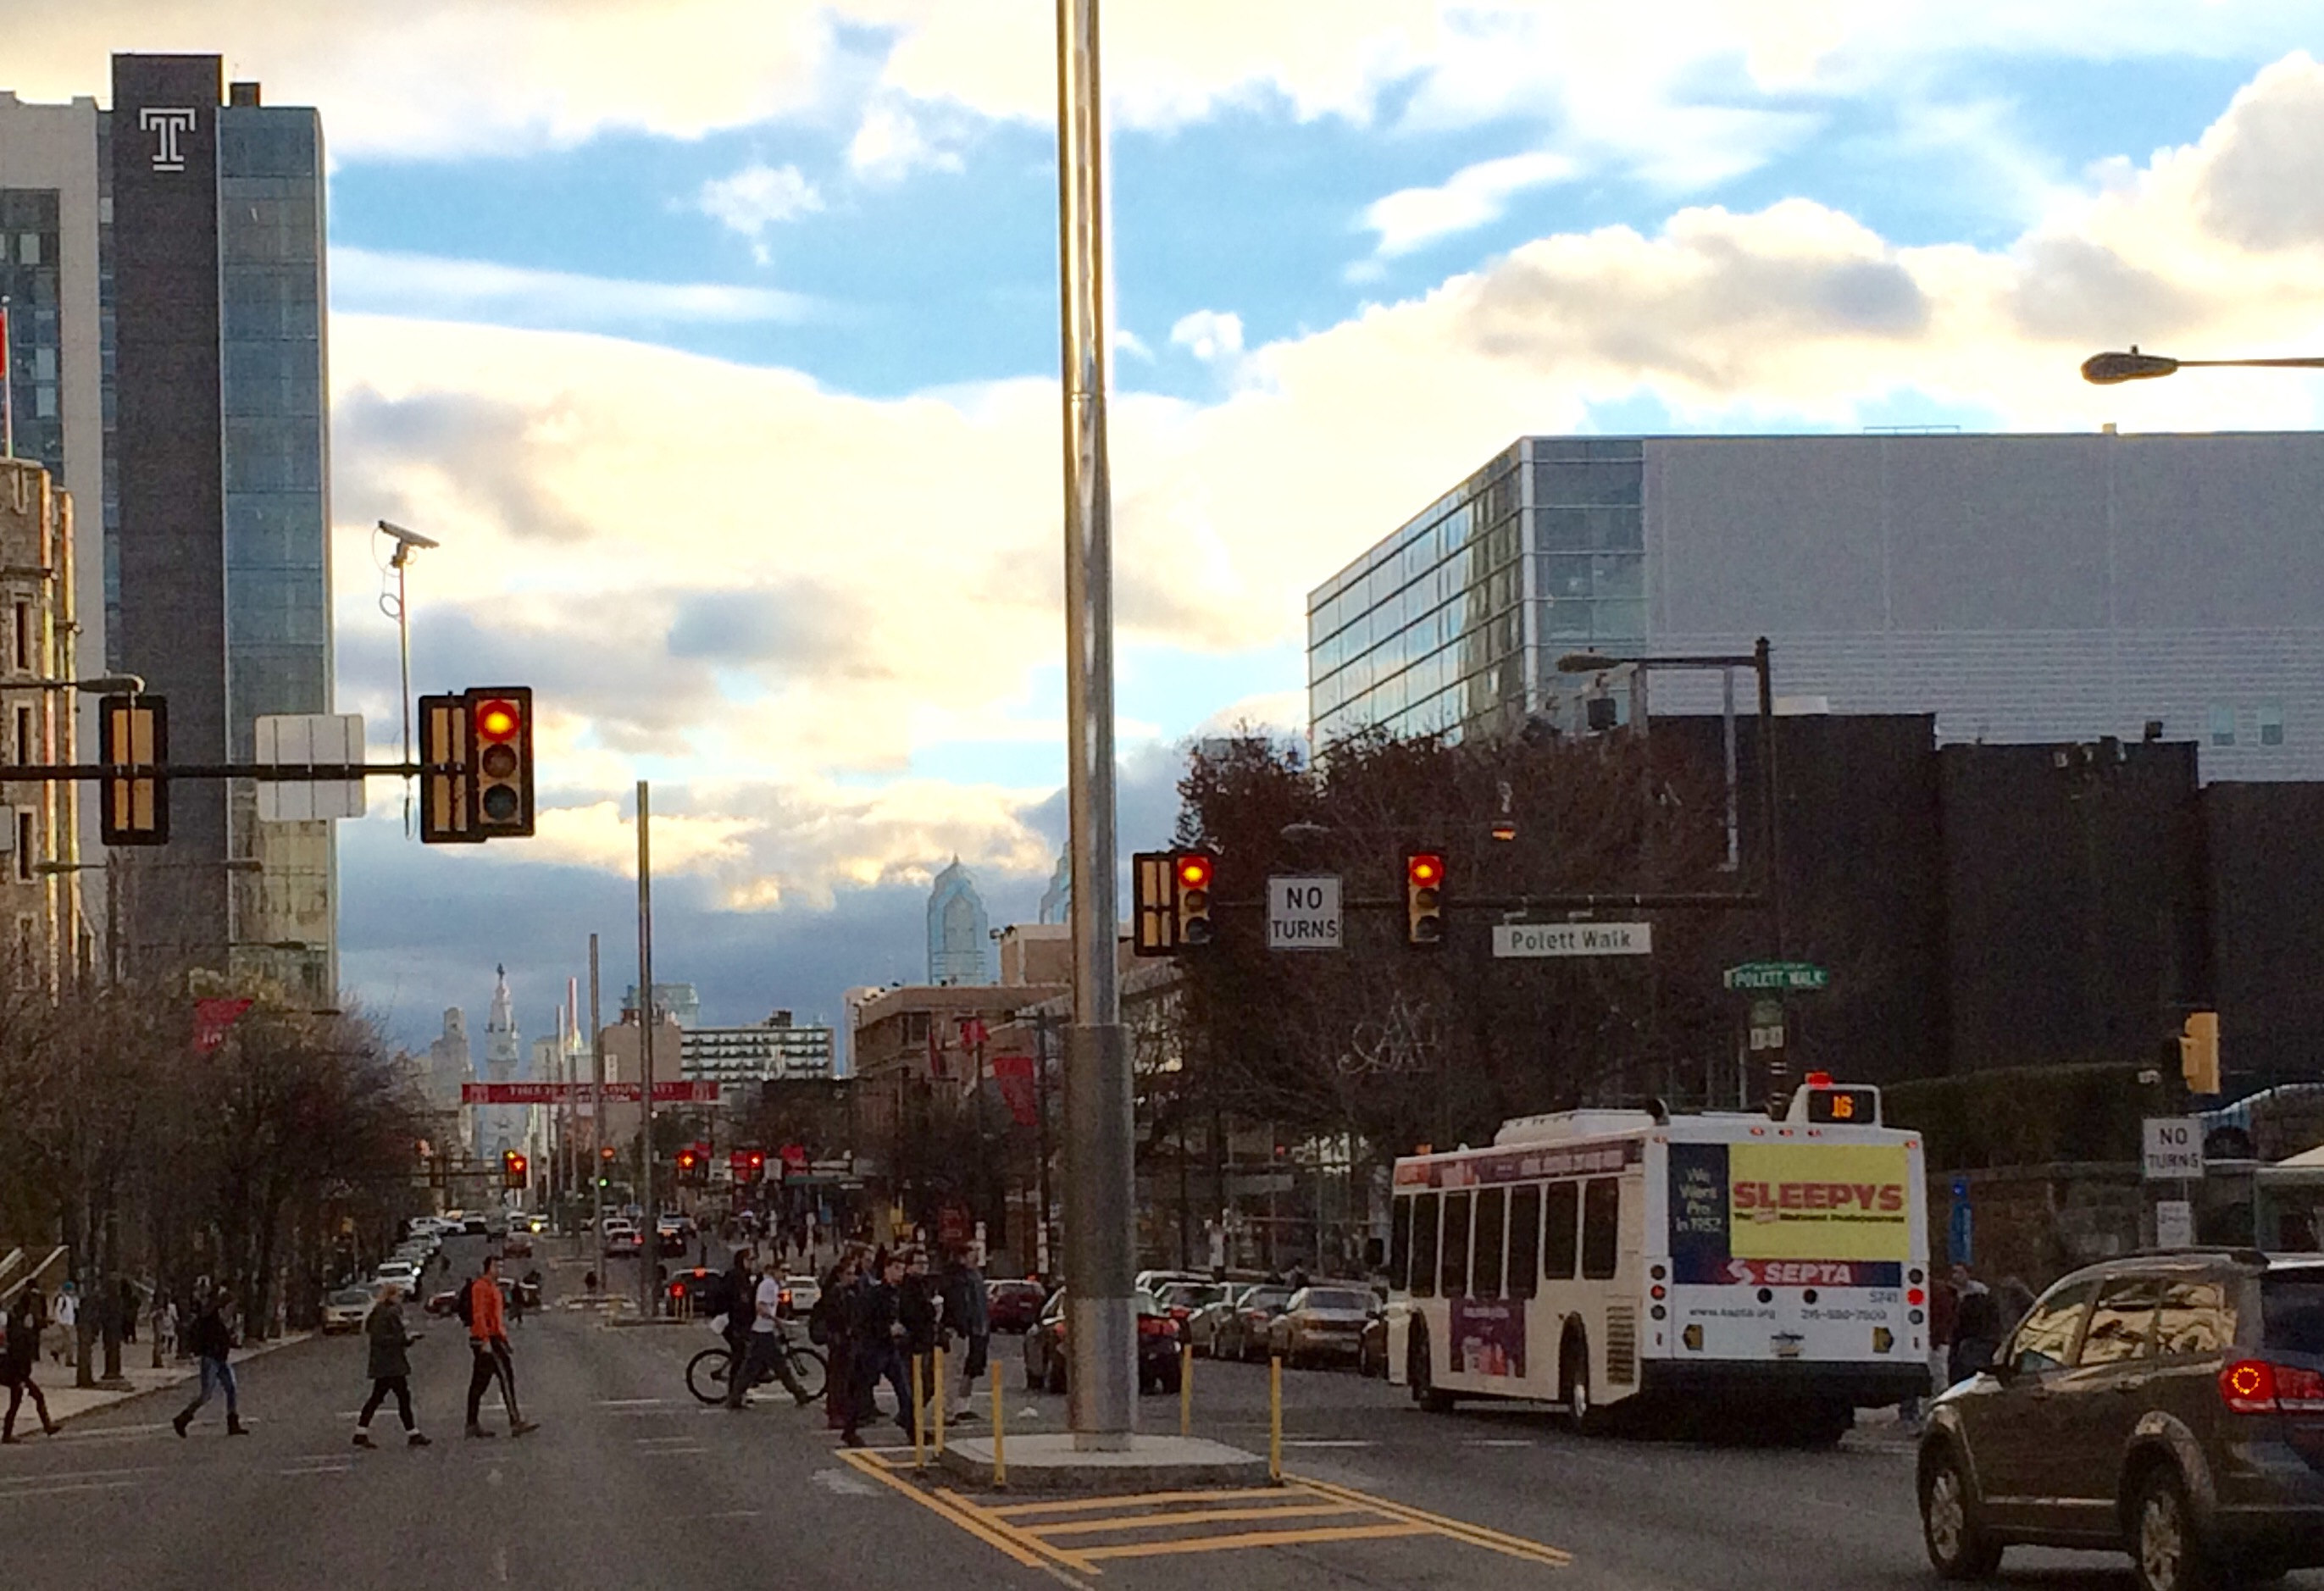 Students walk across Broad Street, passing by the new light poles